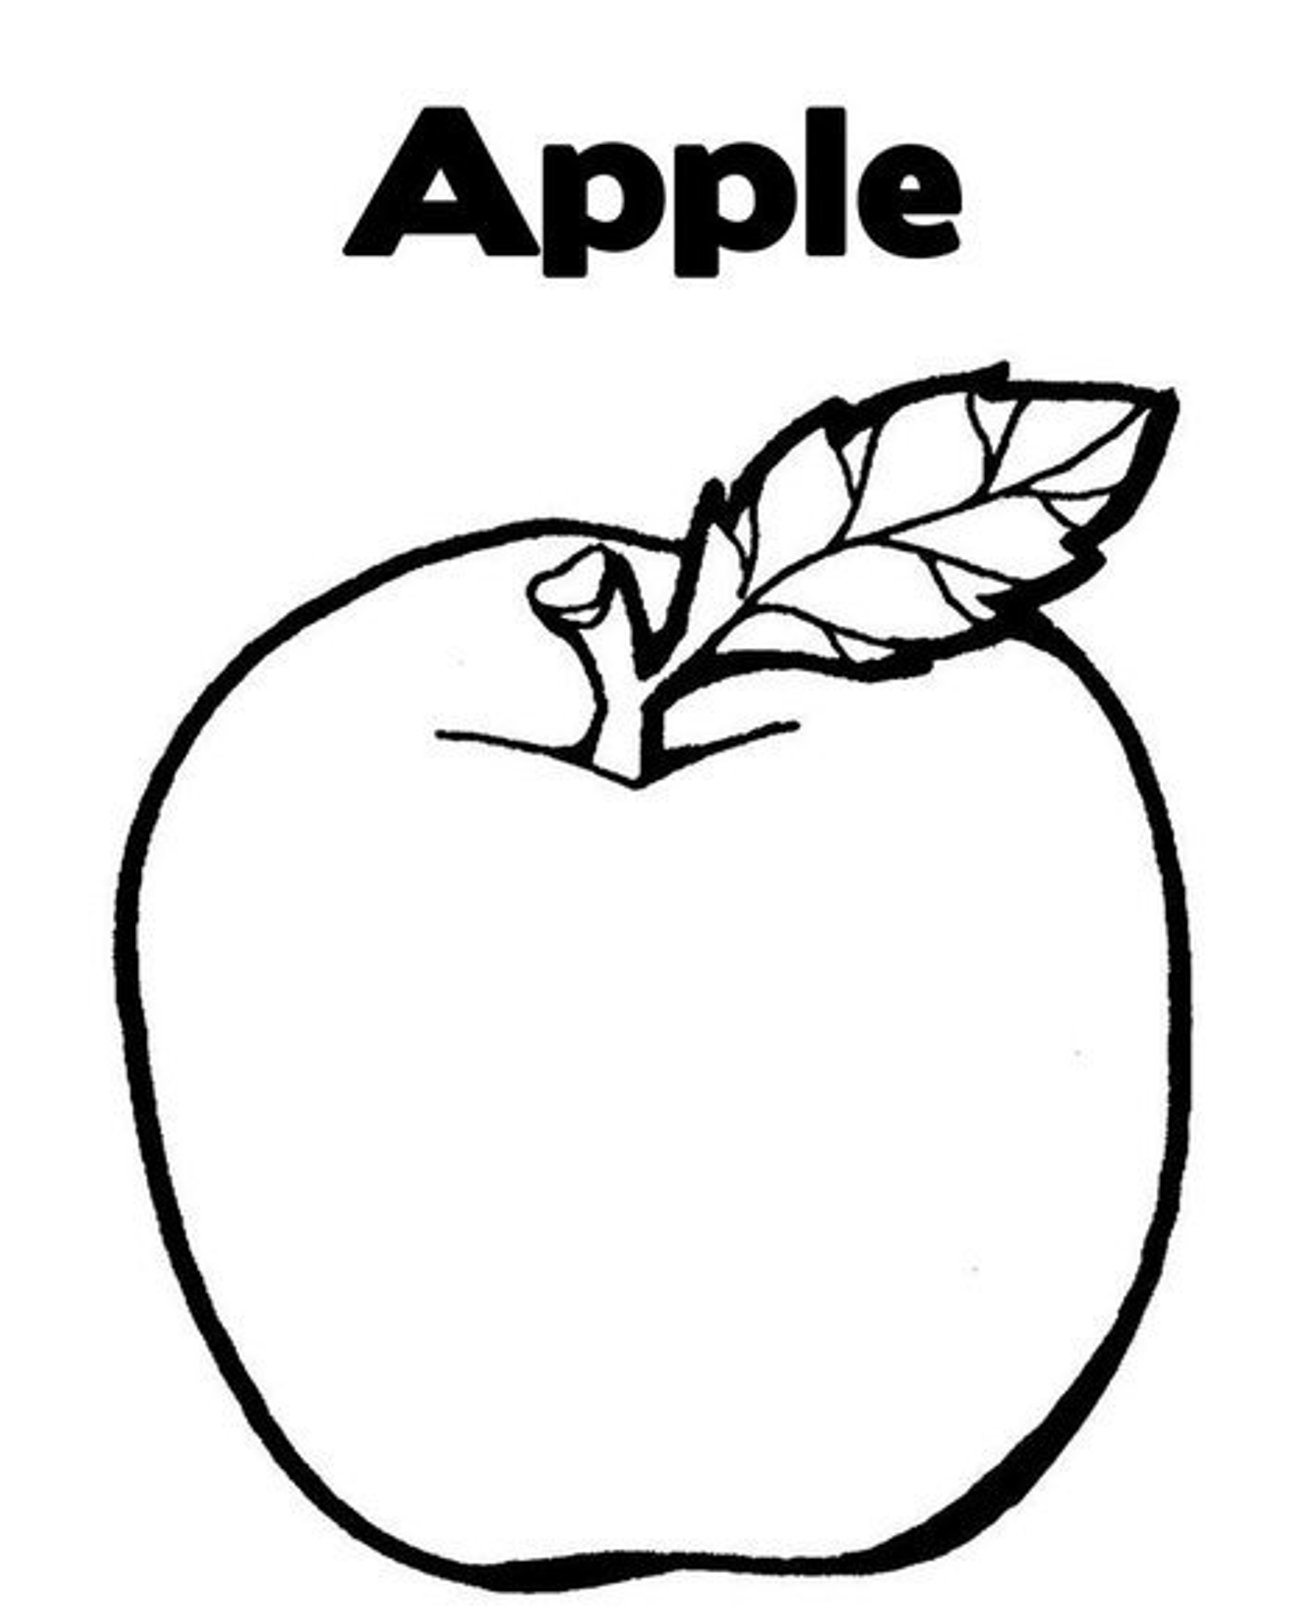 coloring apple page apple coloring pages the sun flower pages page coloring apple